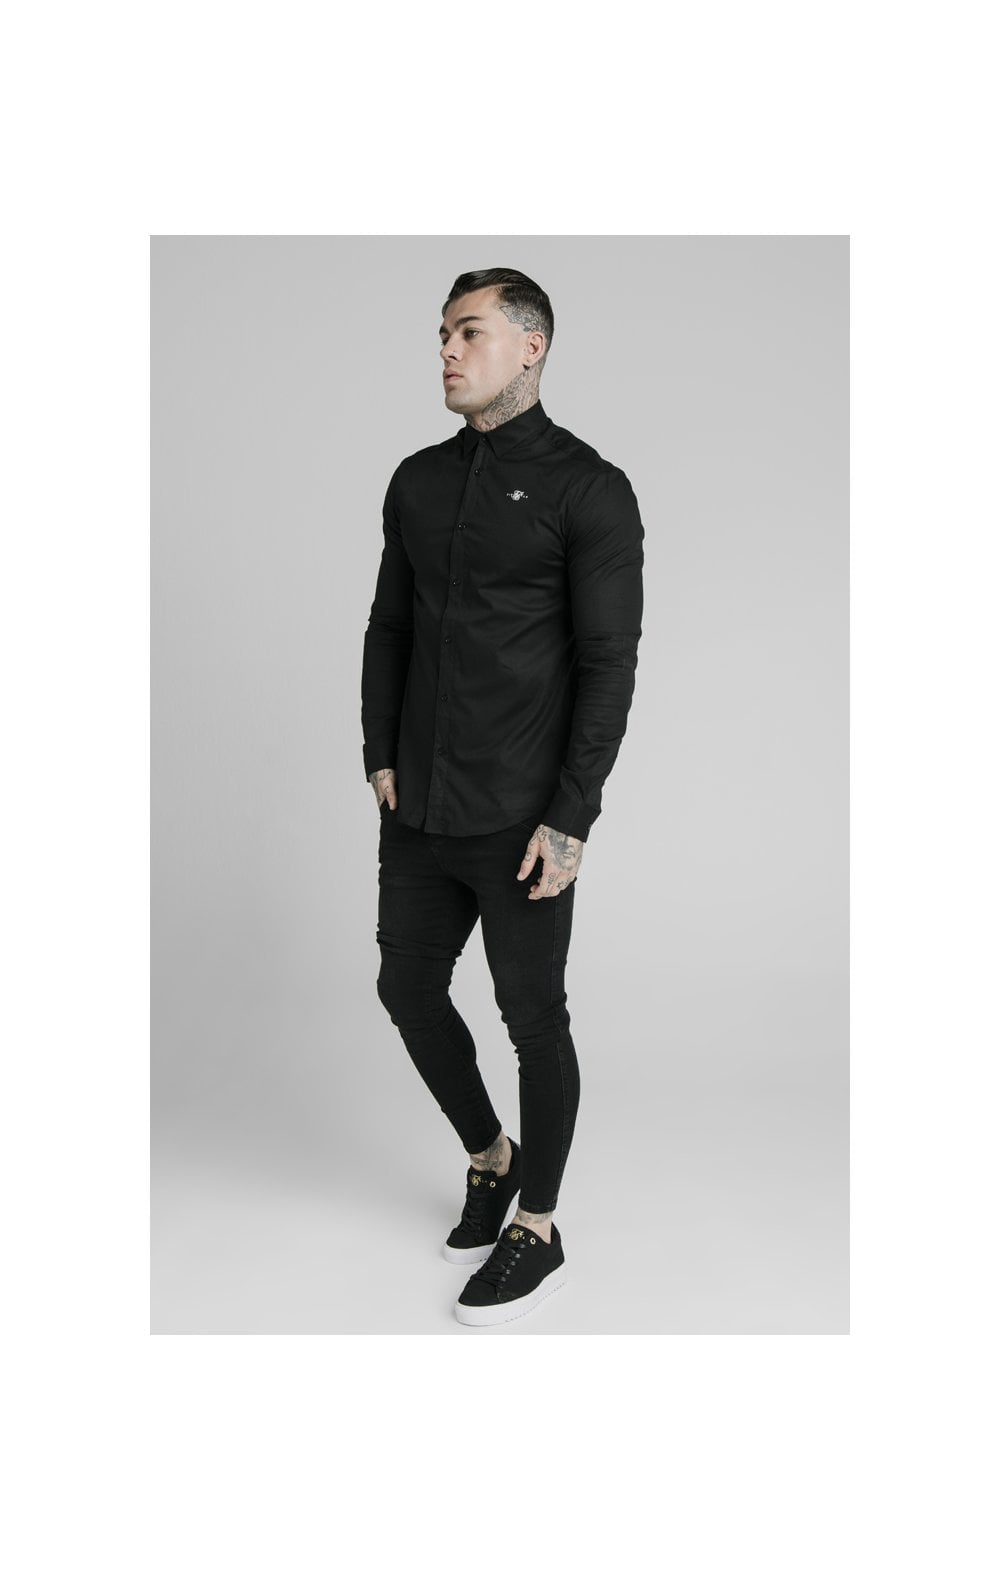 SikSilk L/S Standard Collar Shirt - Black (3)